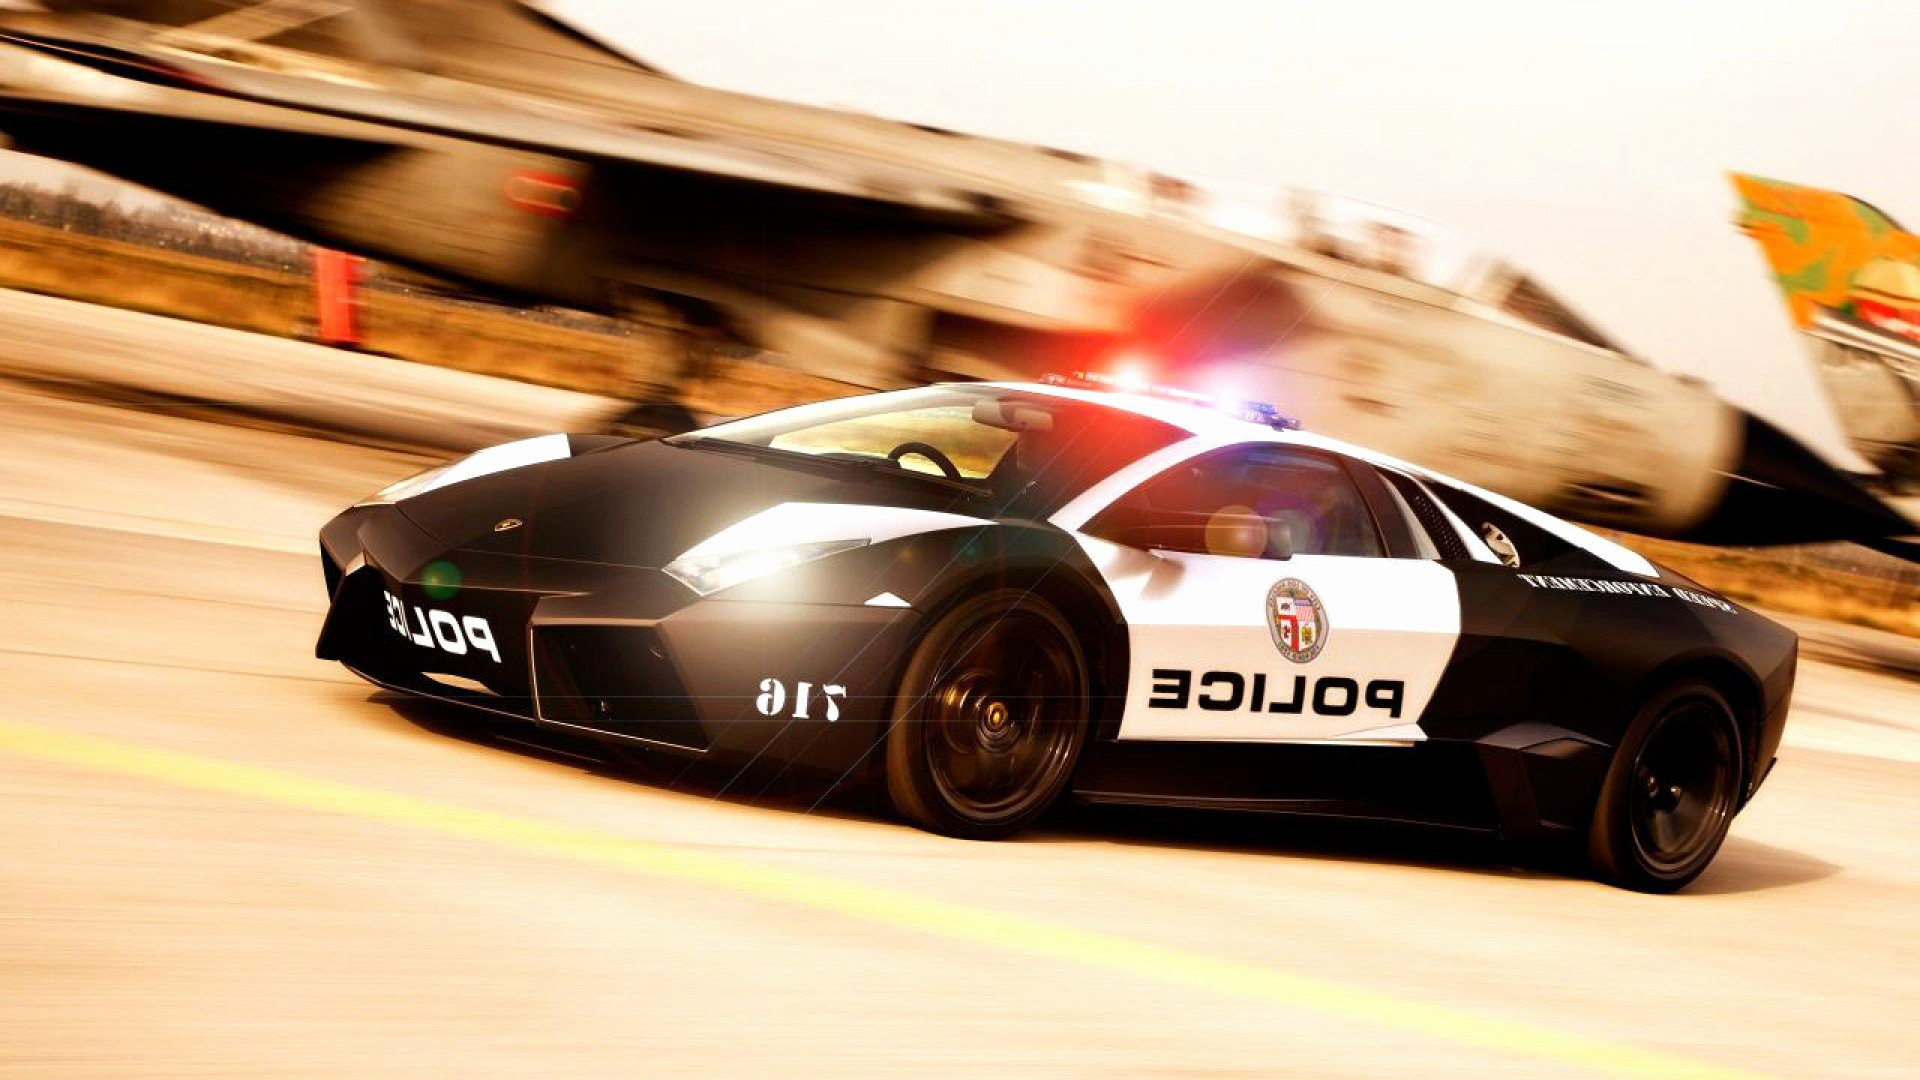 Police Car Wallpaper (68+ images) on car backgrounds bmw, car backgrounds white, car backgrounds mustang, car backgrounds audi, car backgrounds jeep,